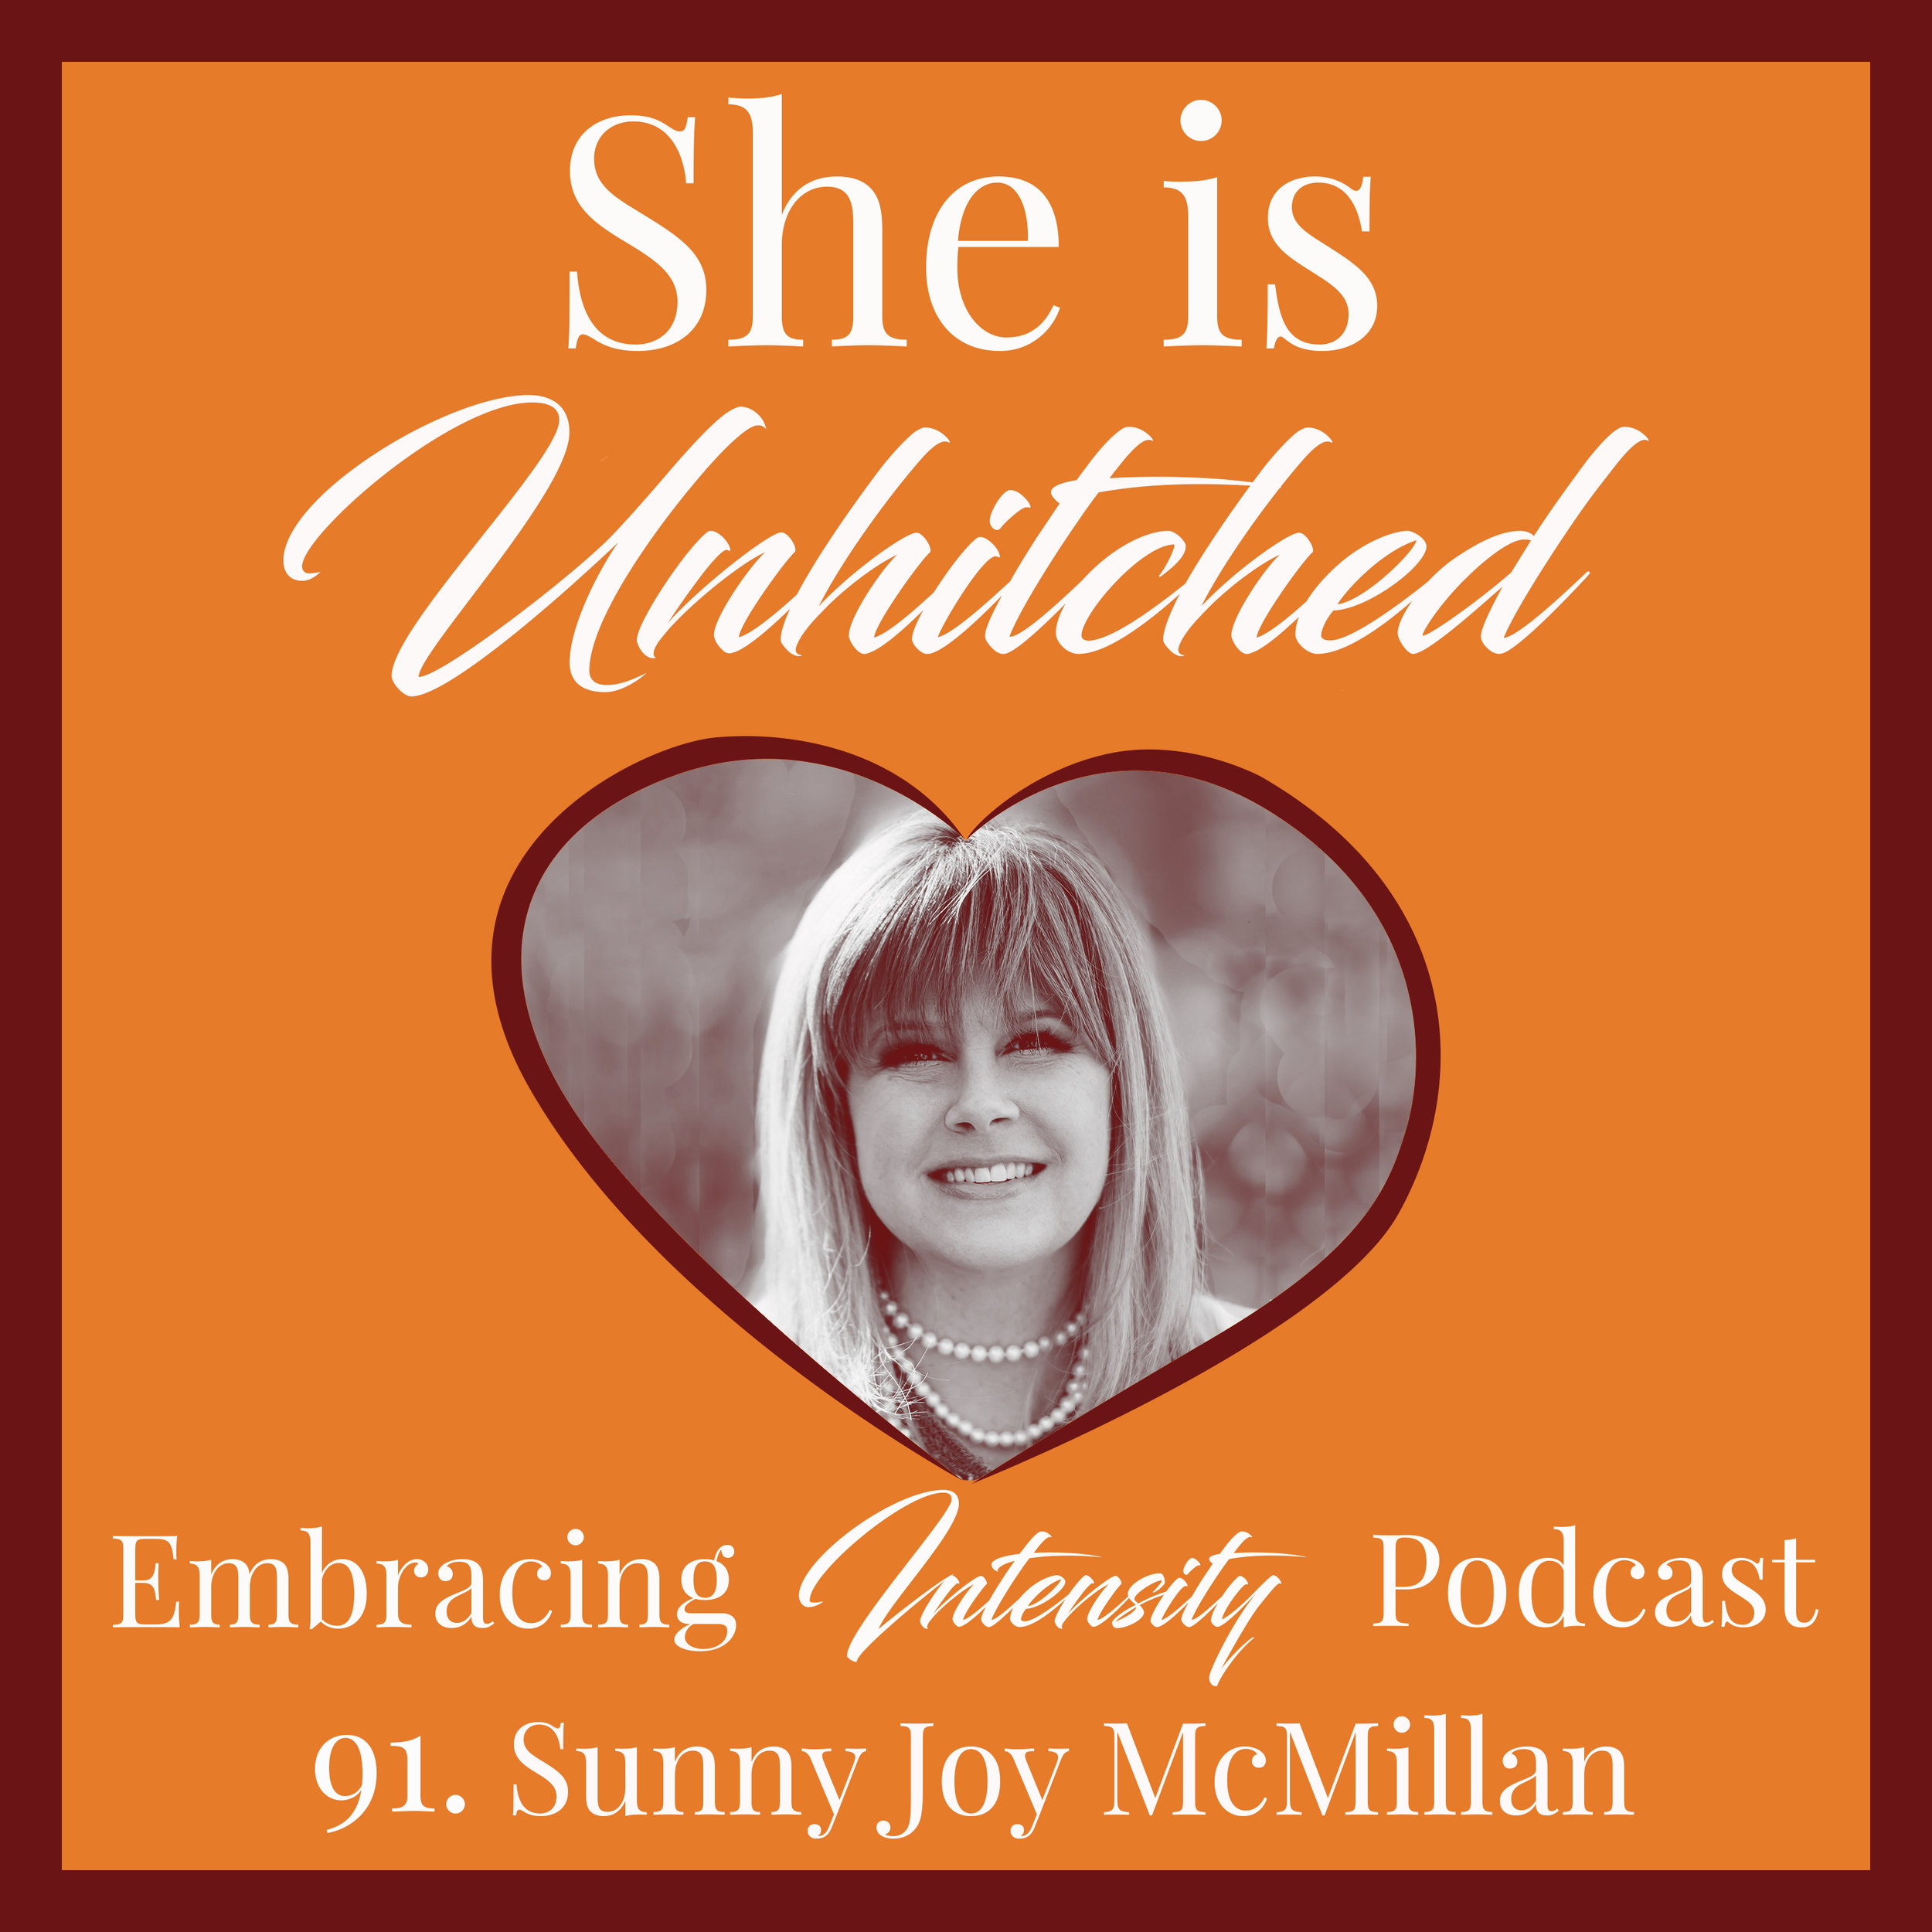 Embracing Intensity 91 with Sunny Joy McMillan